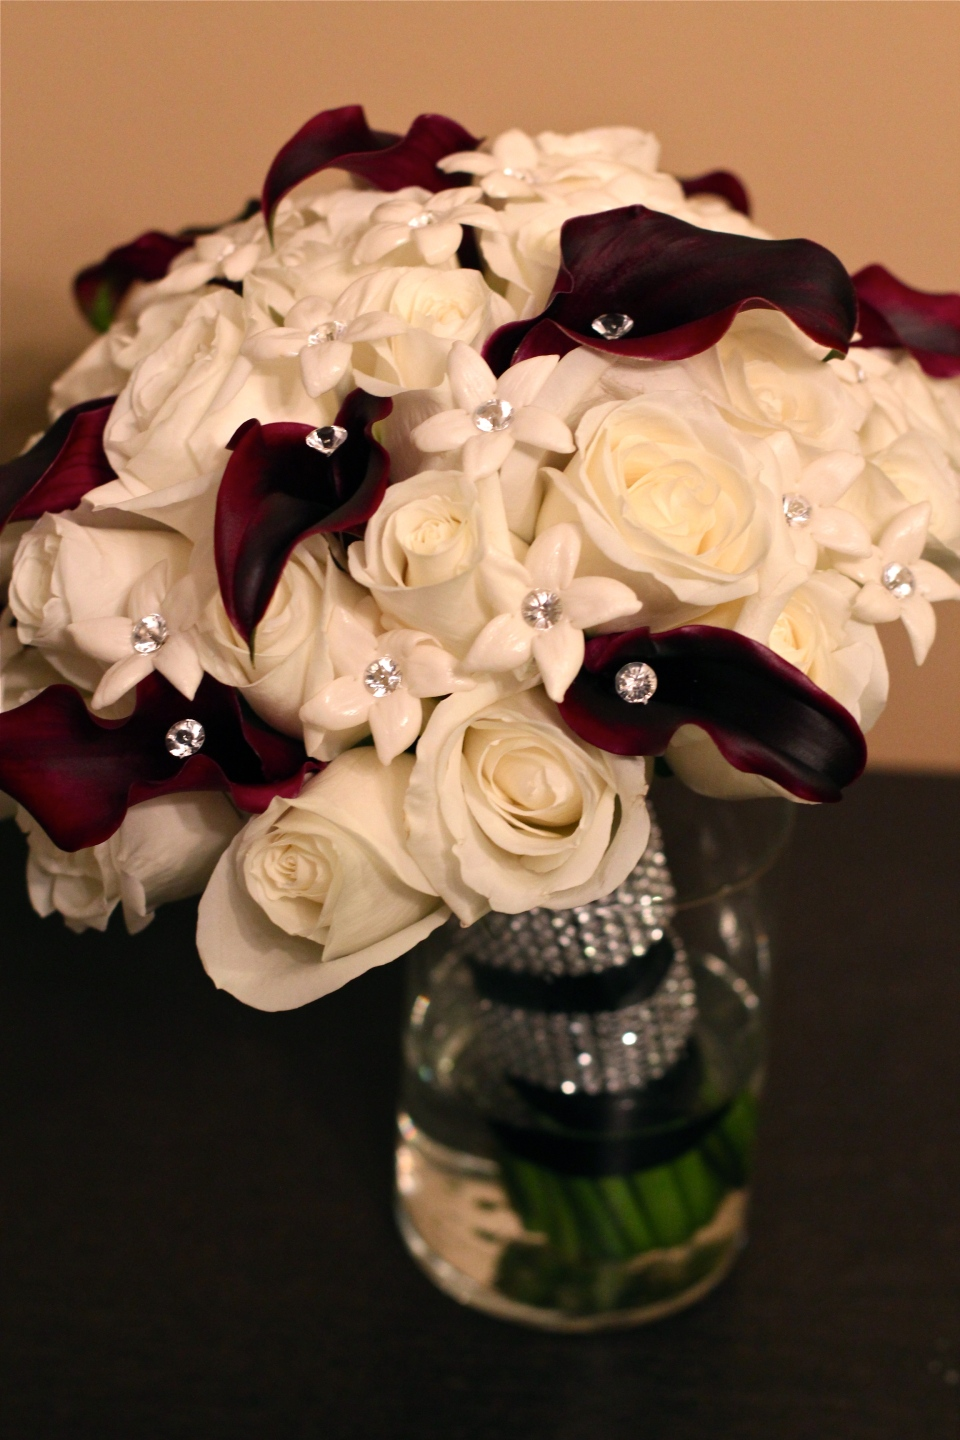 Bridal bouquet of white roses, stephanotis & black calla lilies.